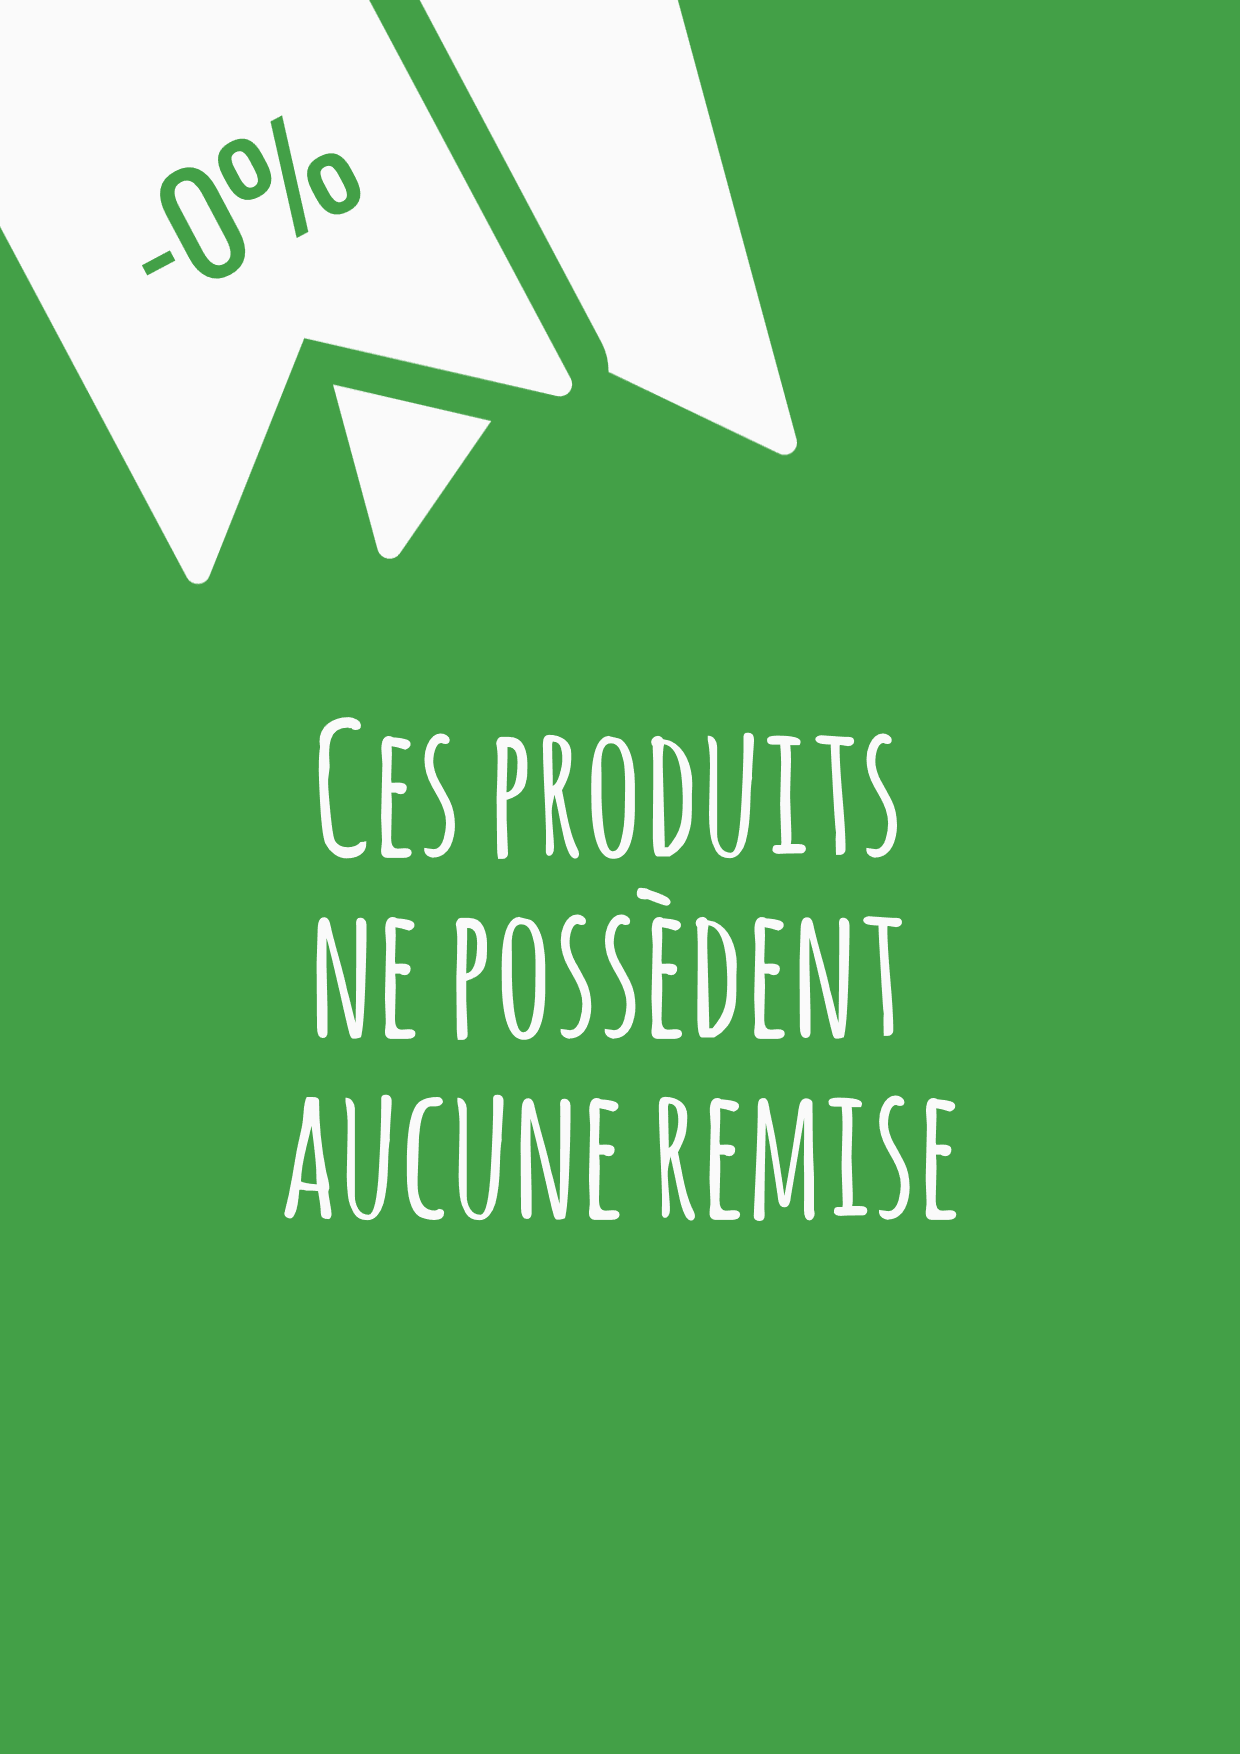 Poster,                Quote,                Simple,                White,                Lime,                 Free Image